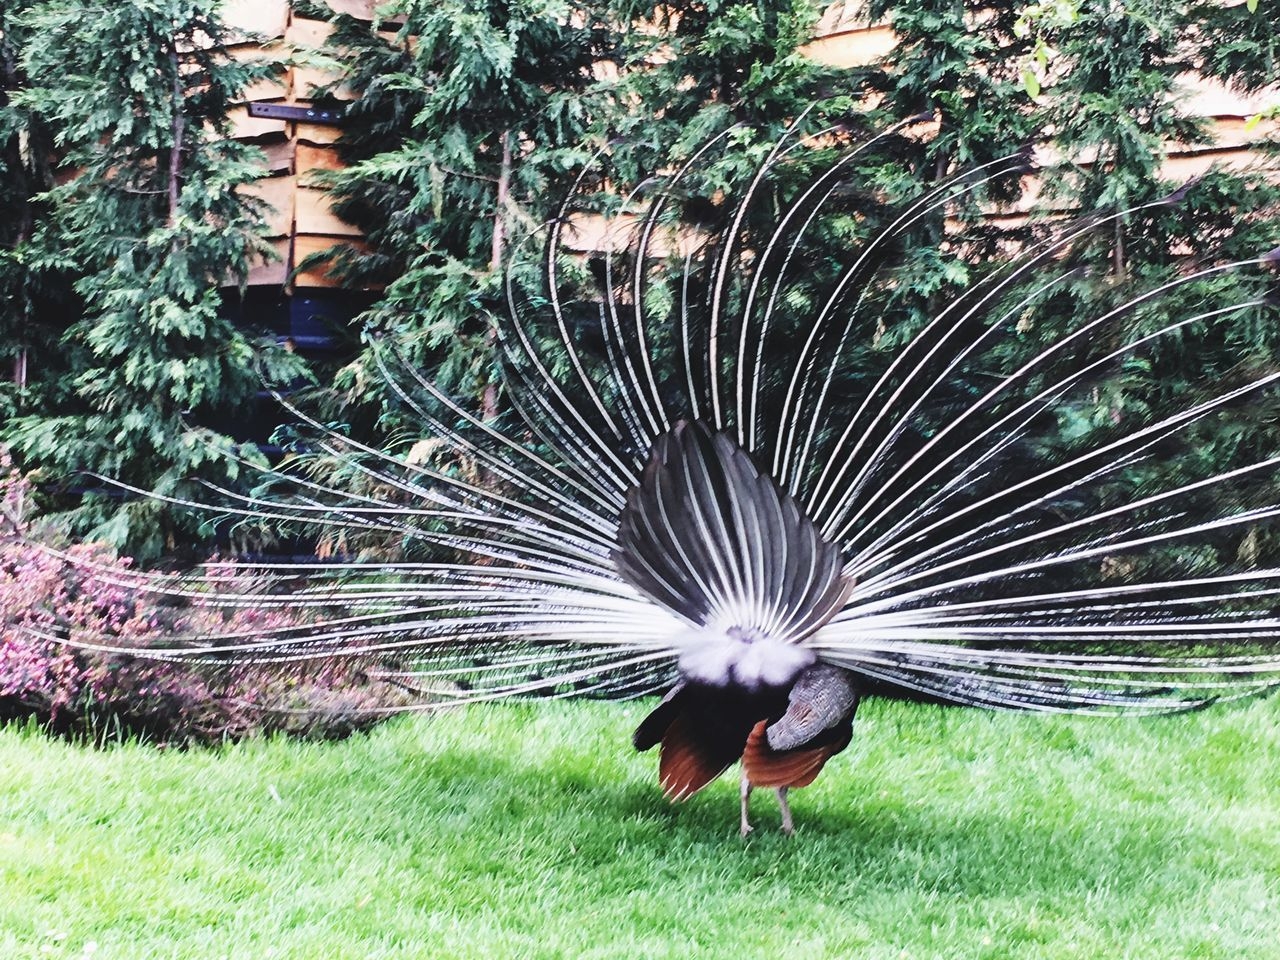 VIEW OF A PEACOCK